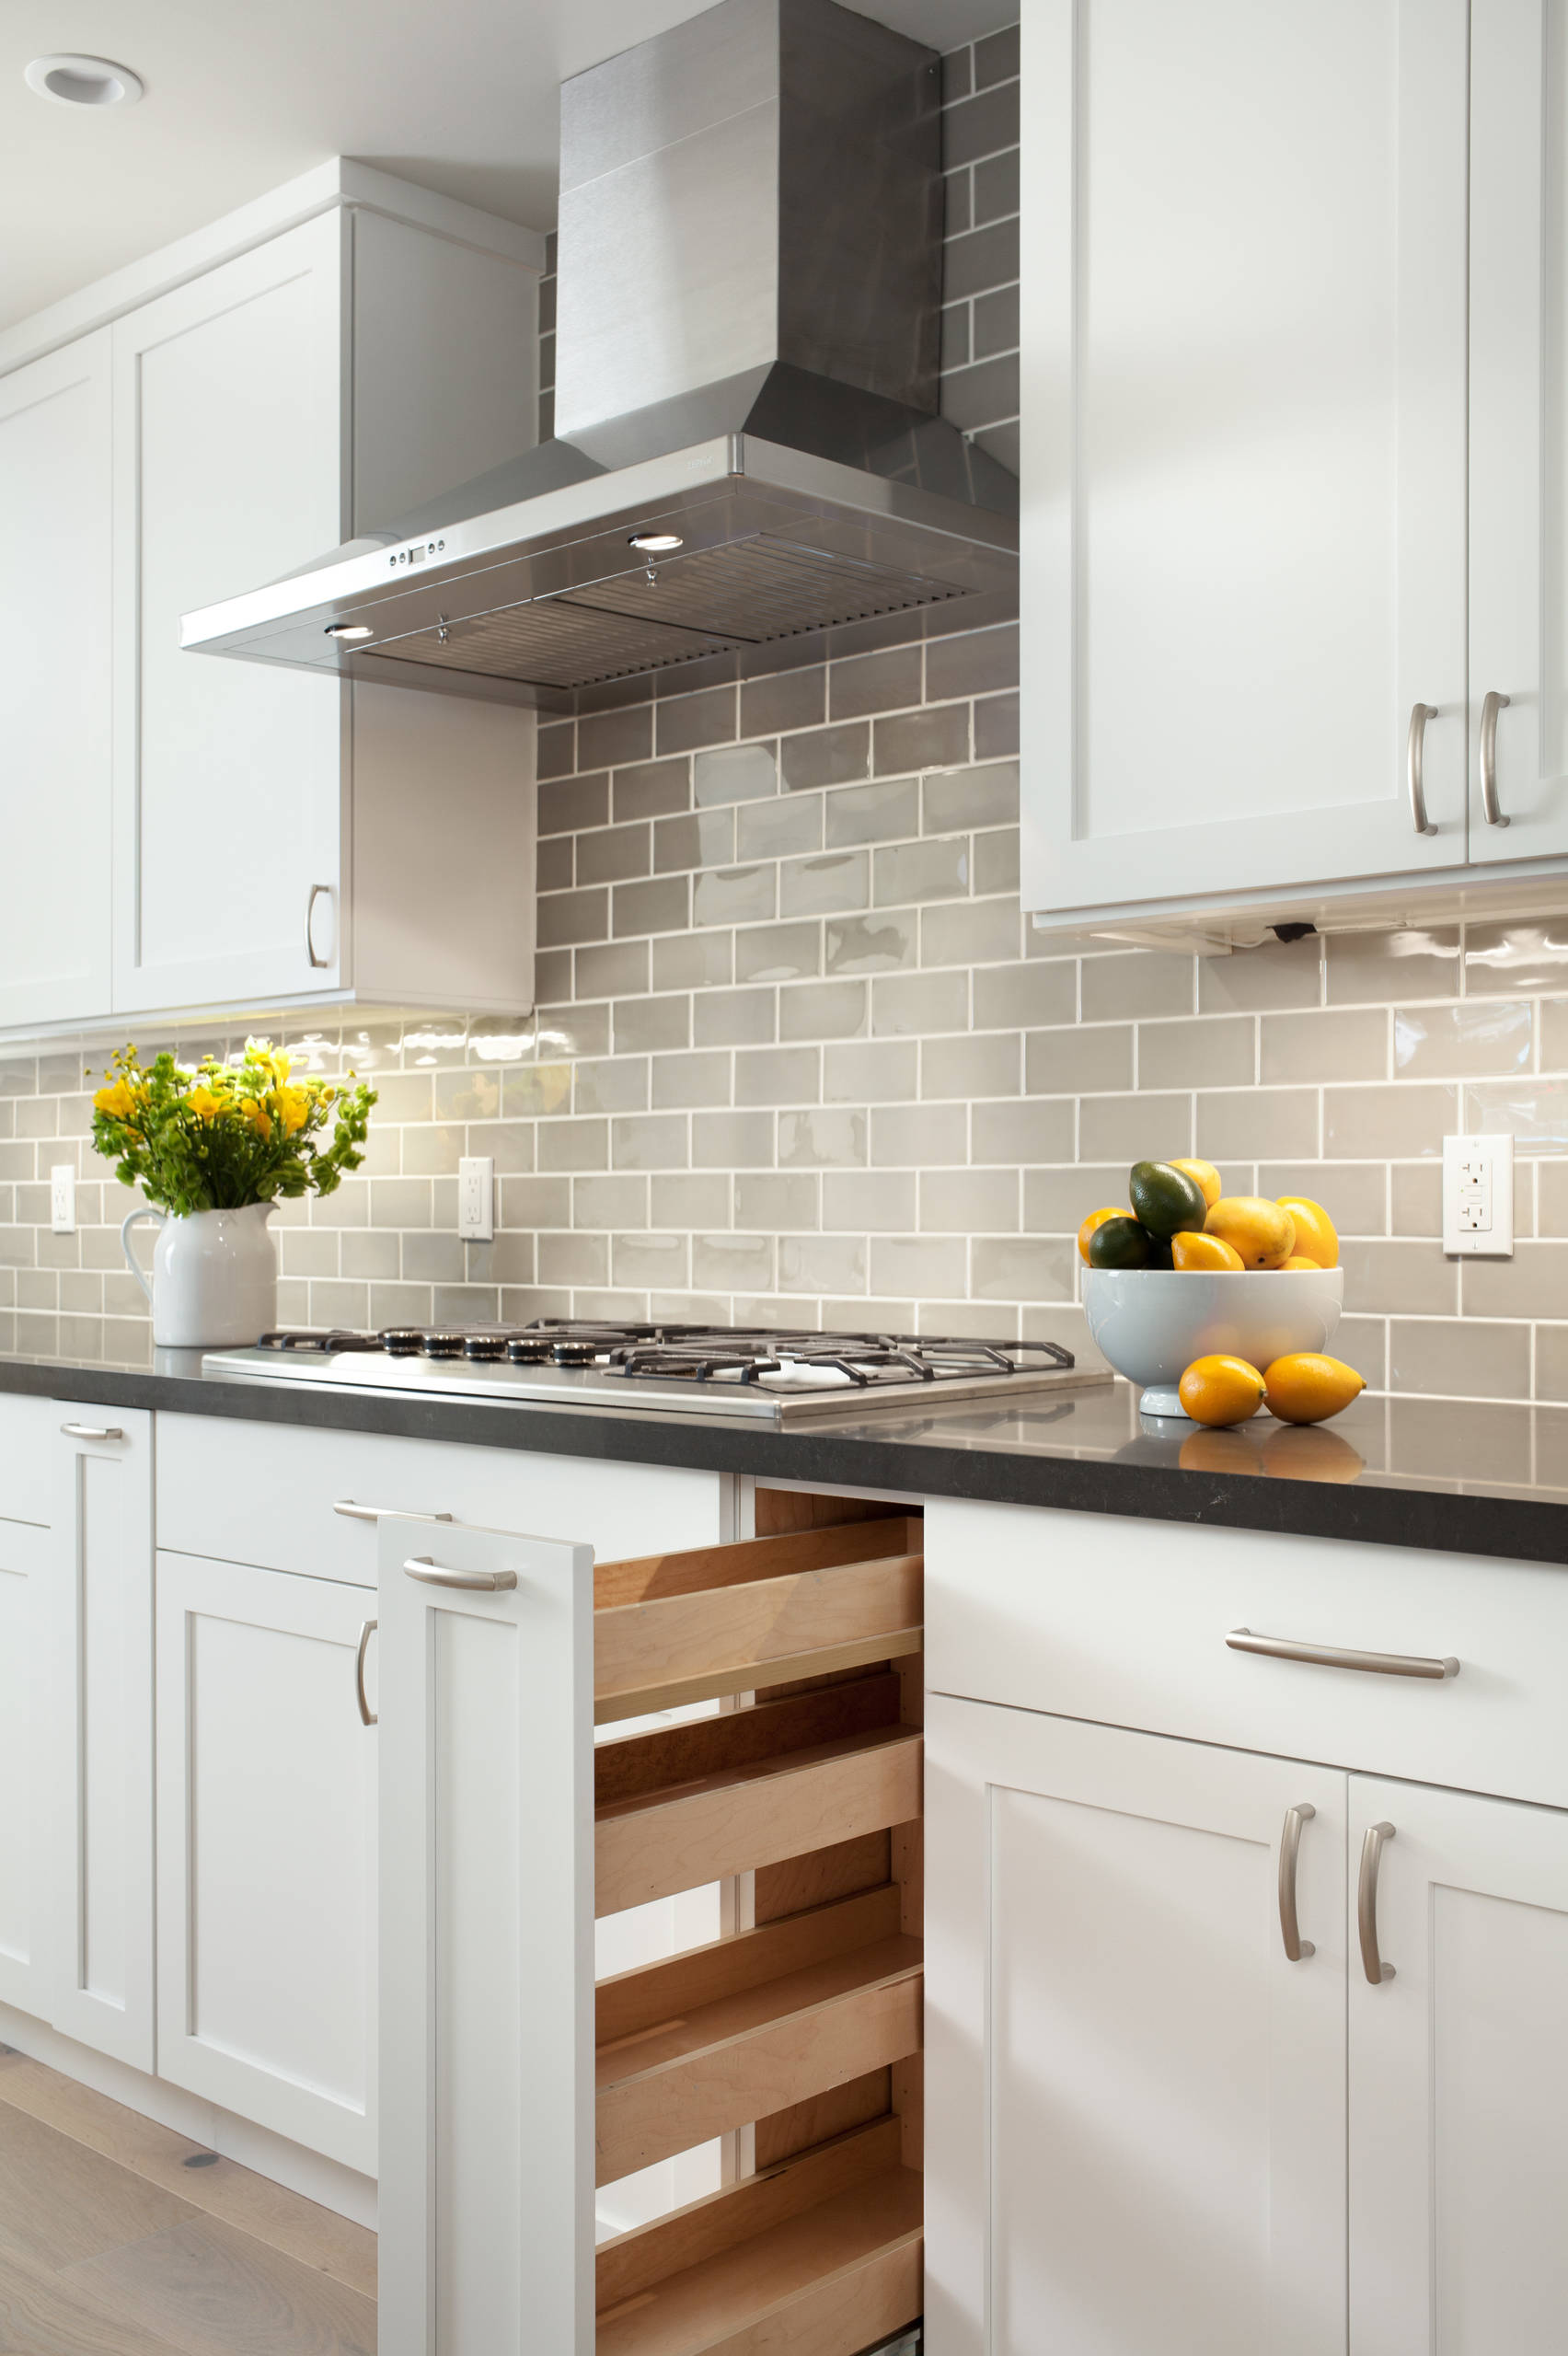 75 Beautiful Modern Kitchen Pictures Ideas May 2021 Houzz